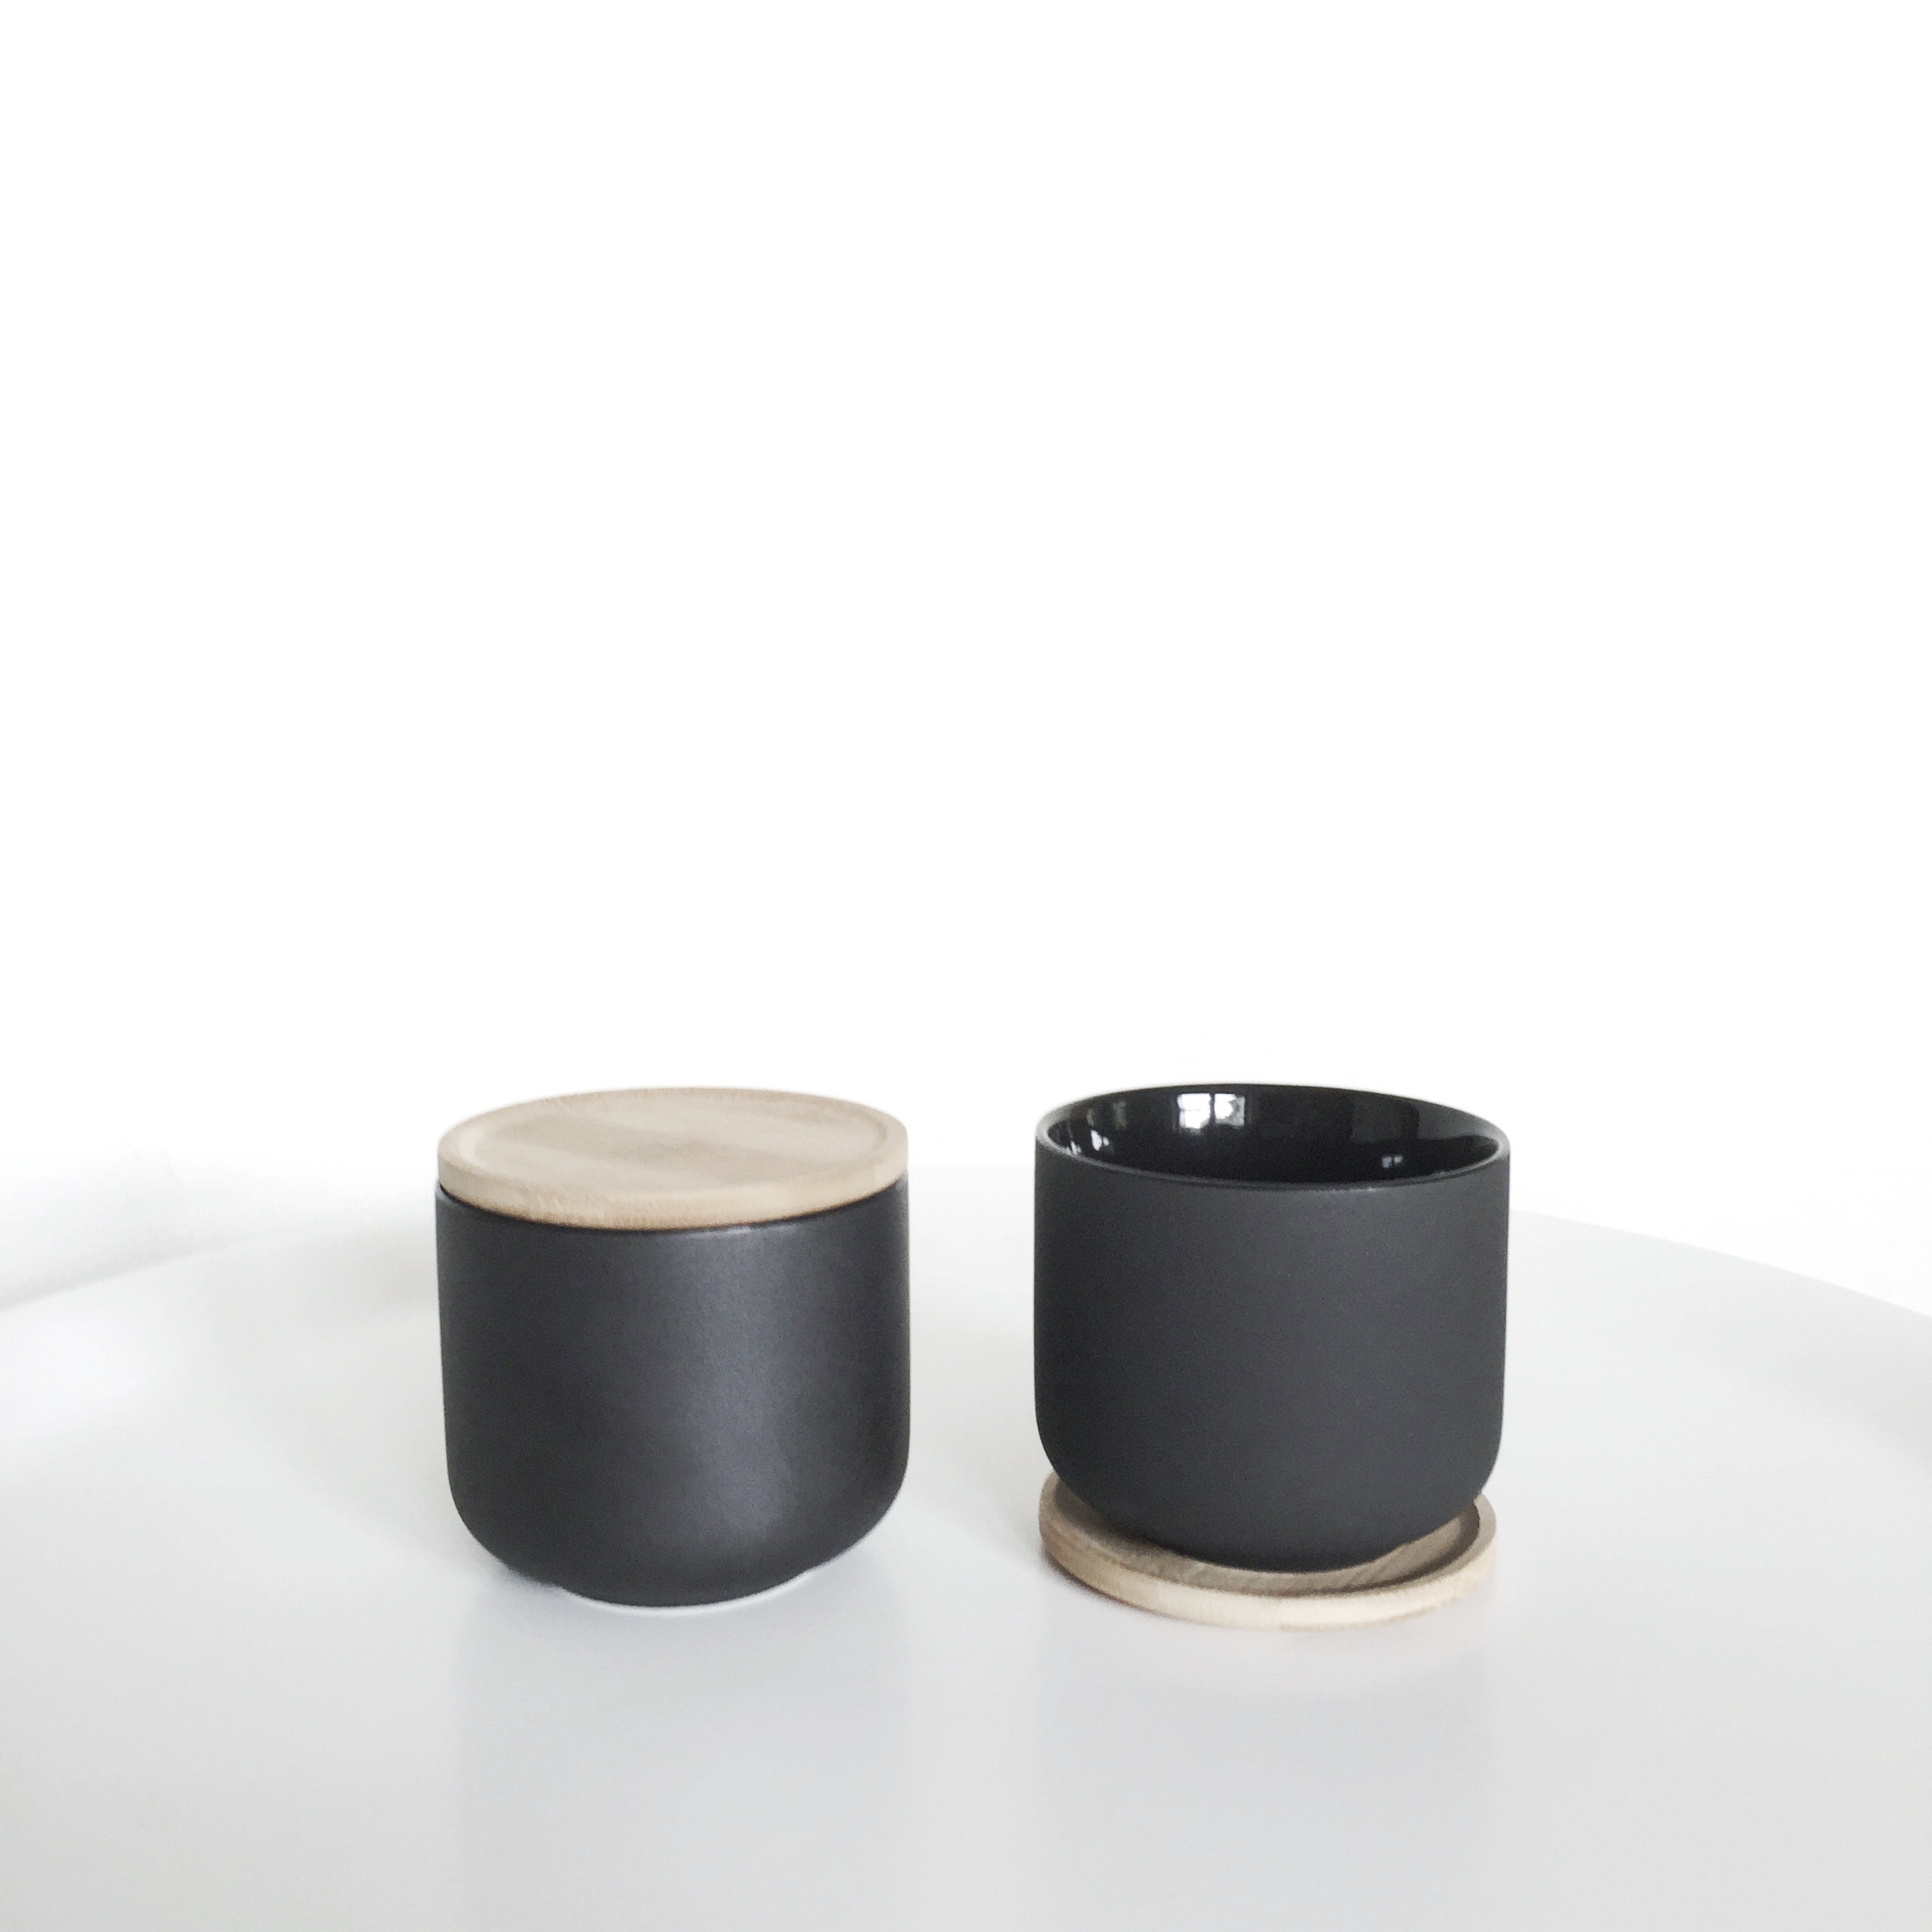 Two mugs from Stelton, Goodlives.nl